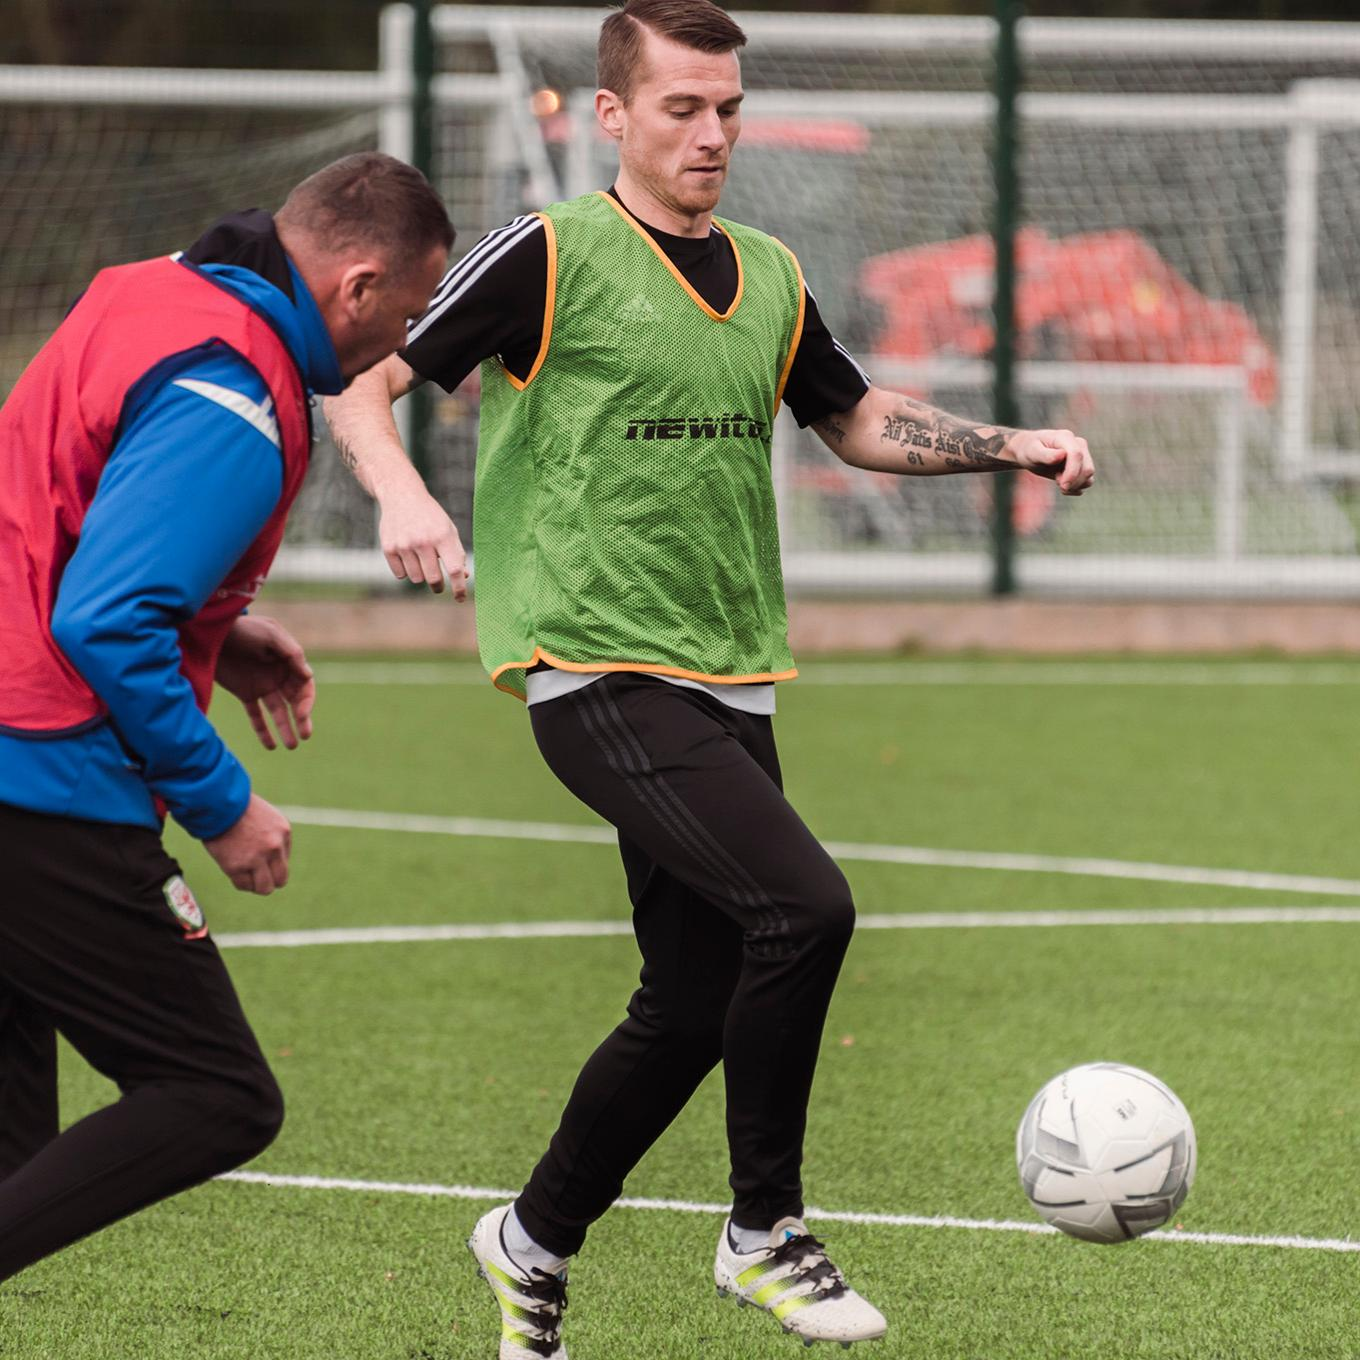 Two students playing football on the 3G pitch at Colliers Park training ground